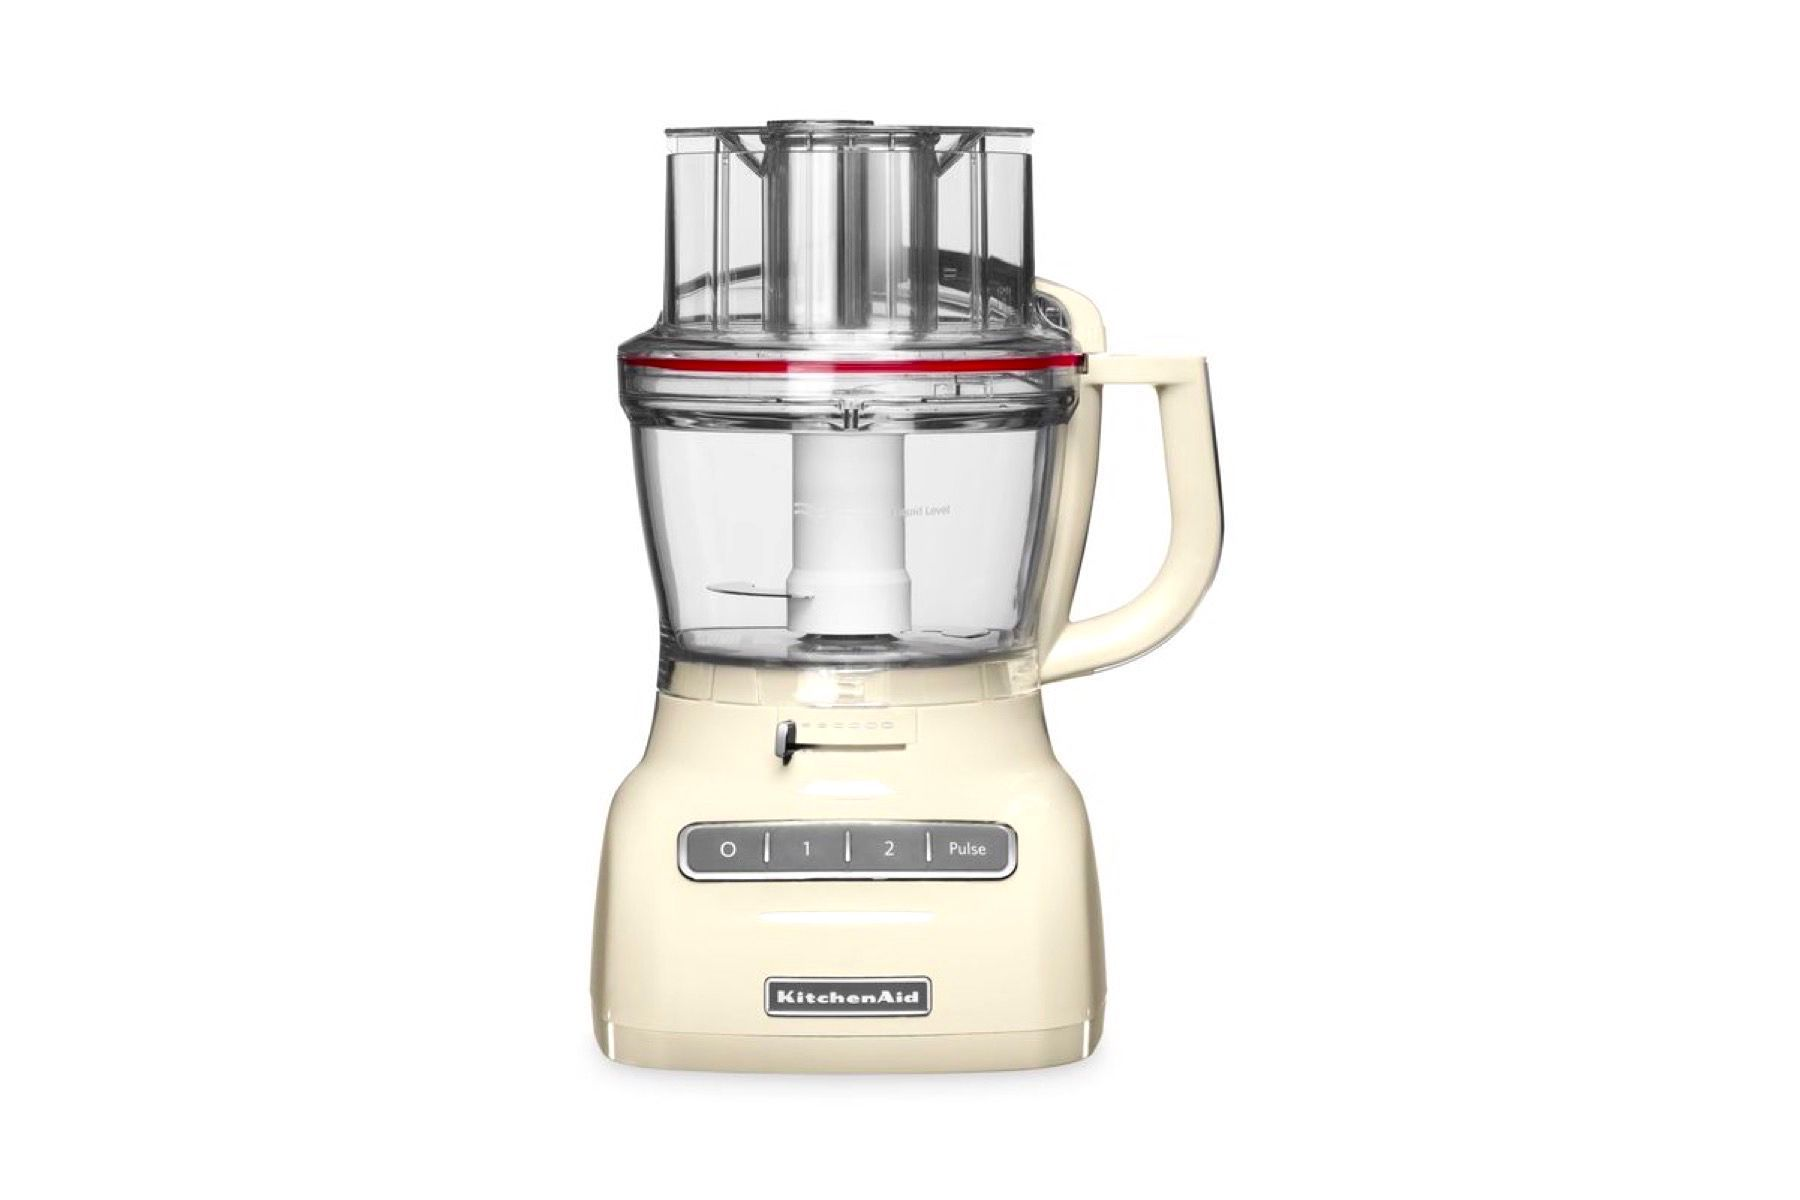 Best Food Processors 2021 10 Top Models To Use At Home